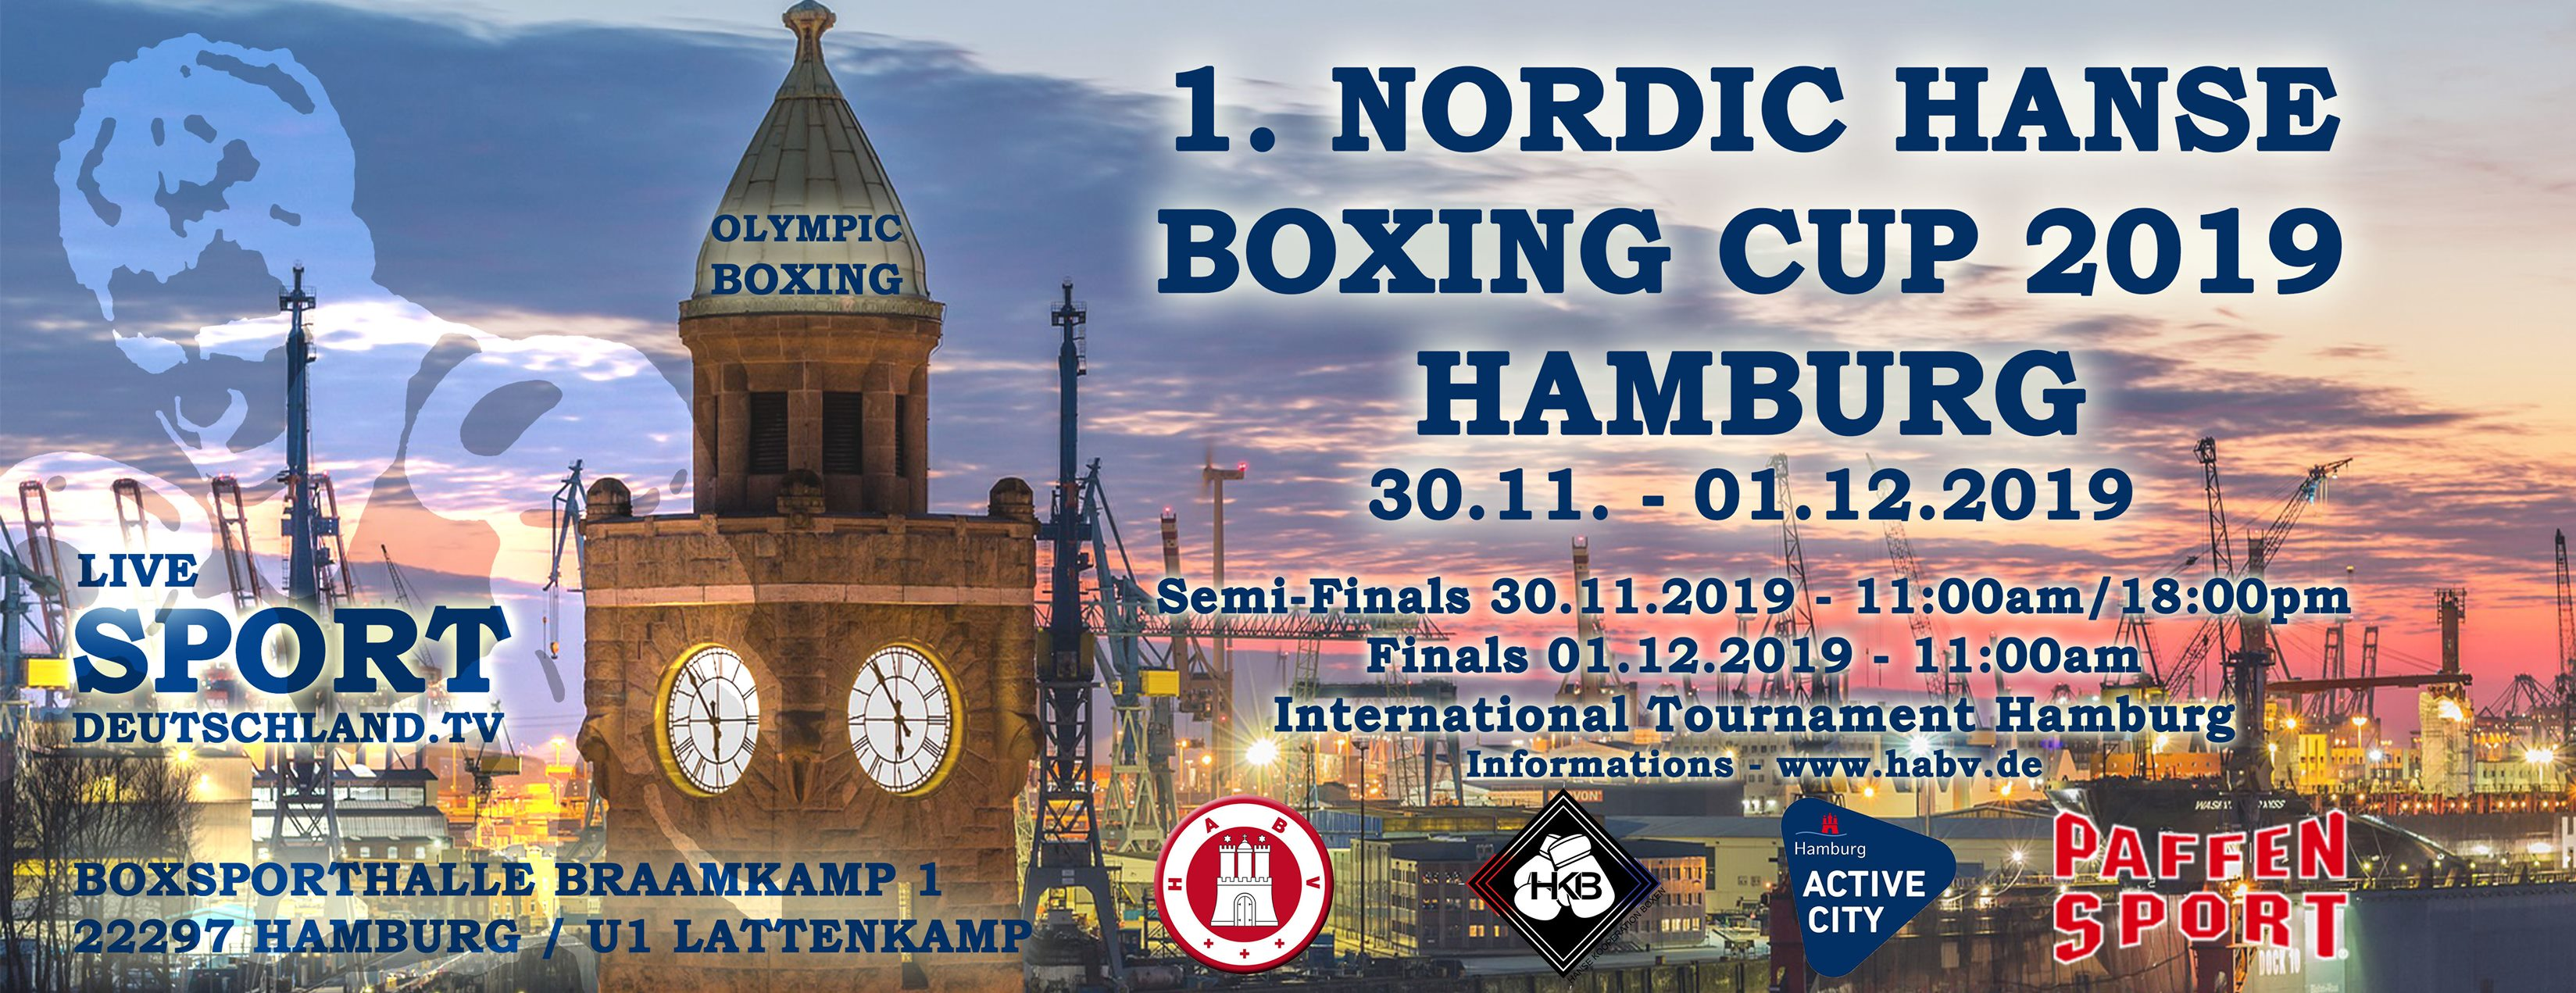 1. Nordic Hanse Boxing Cup 2019